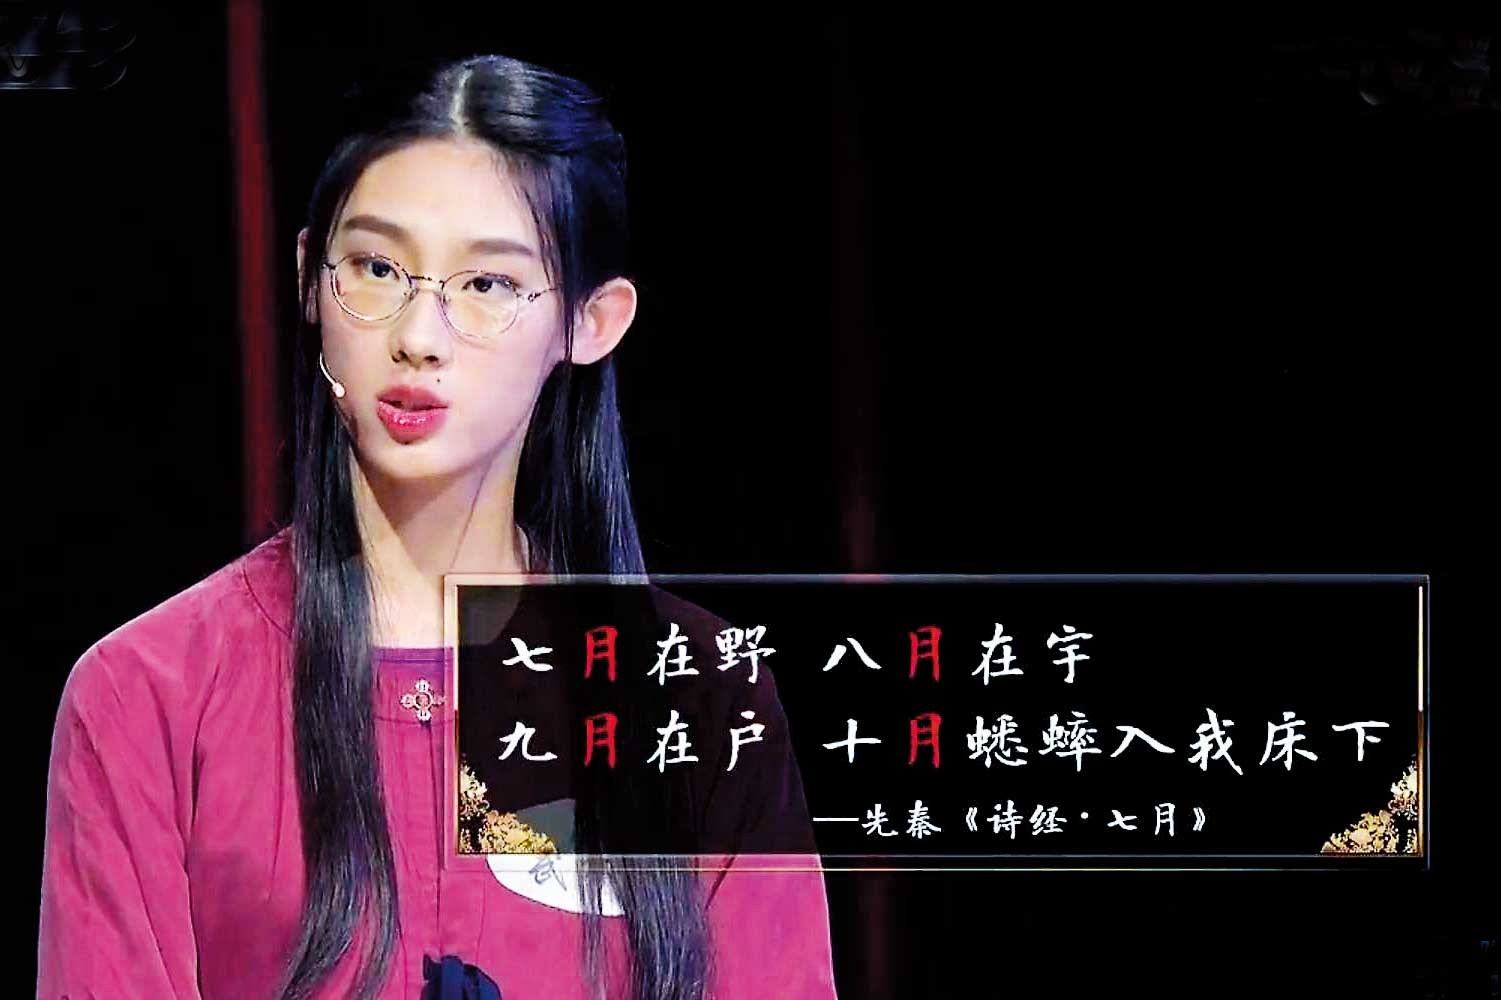 Shanghai high school student Wu Yishu won the national poetry contest, dazzling judges with an ancient poem about crickets.